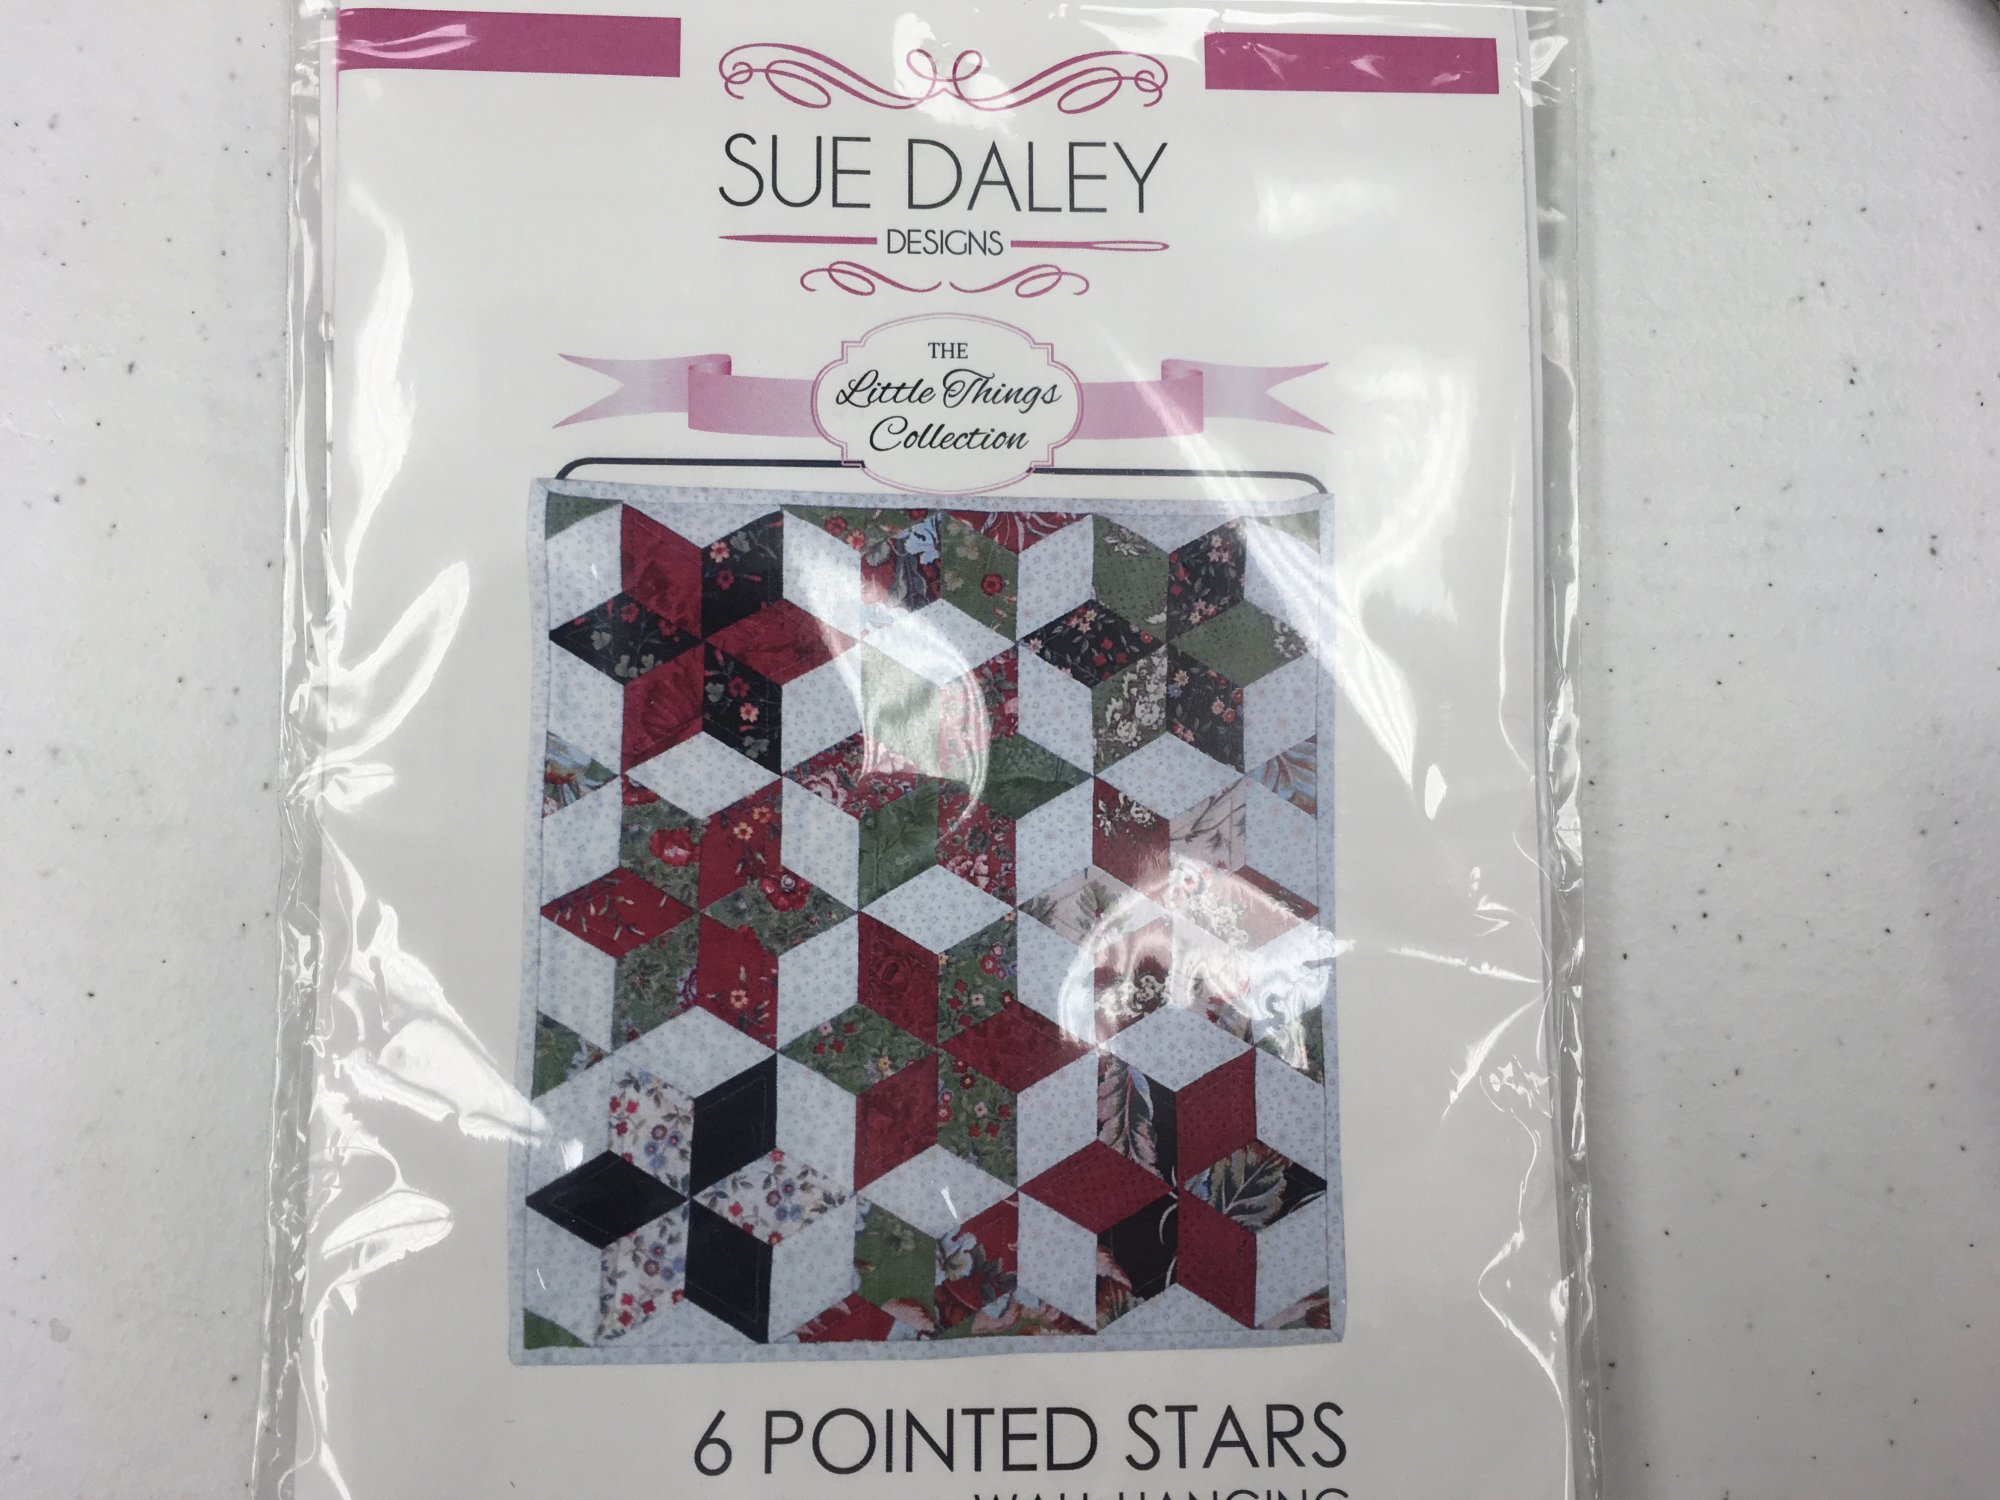 6 POINTED STAR EPP PATTERN Sue Daley